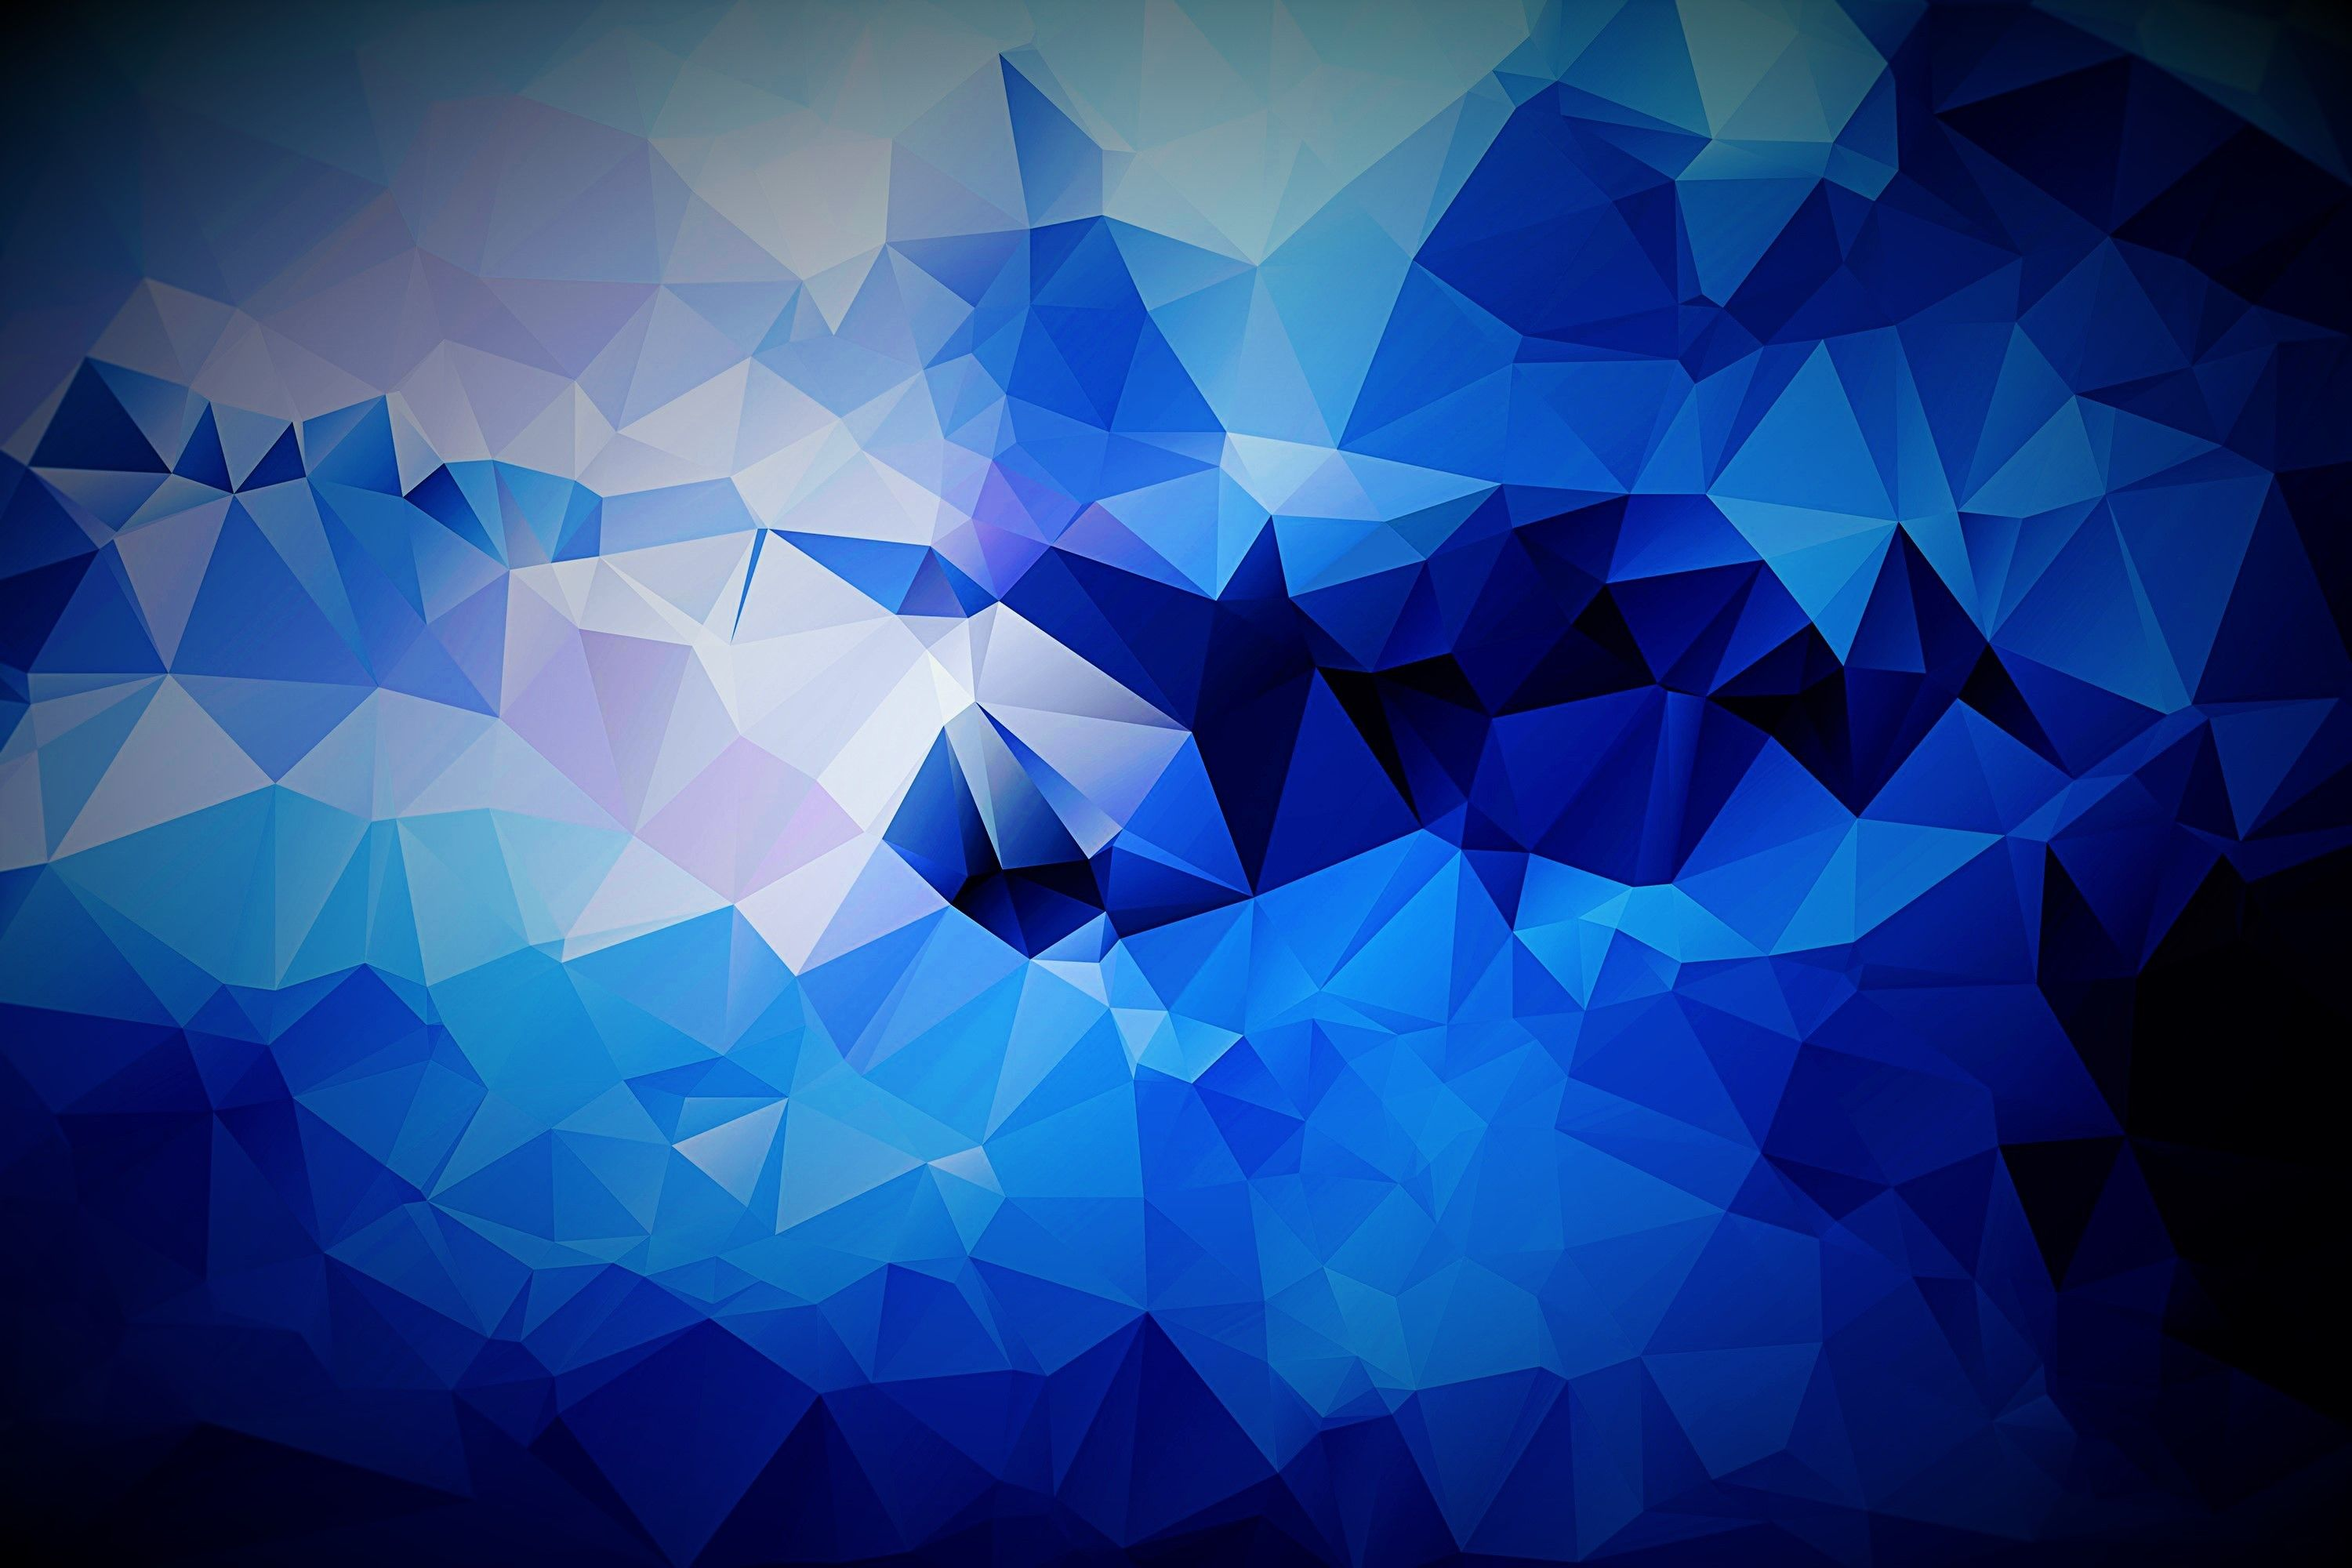 Blue Abstract Wallpapers For Free Wallpaper Abstract Wallpaper